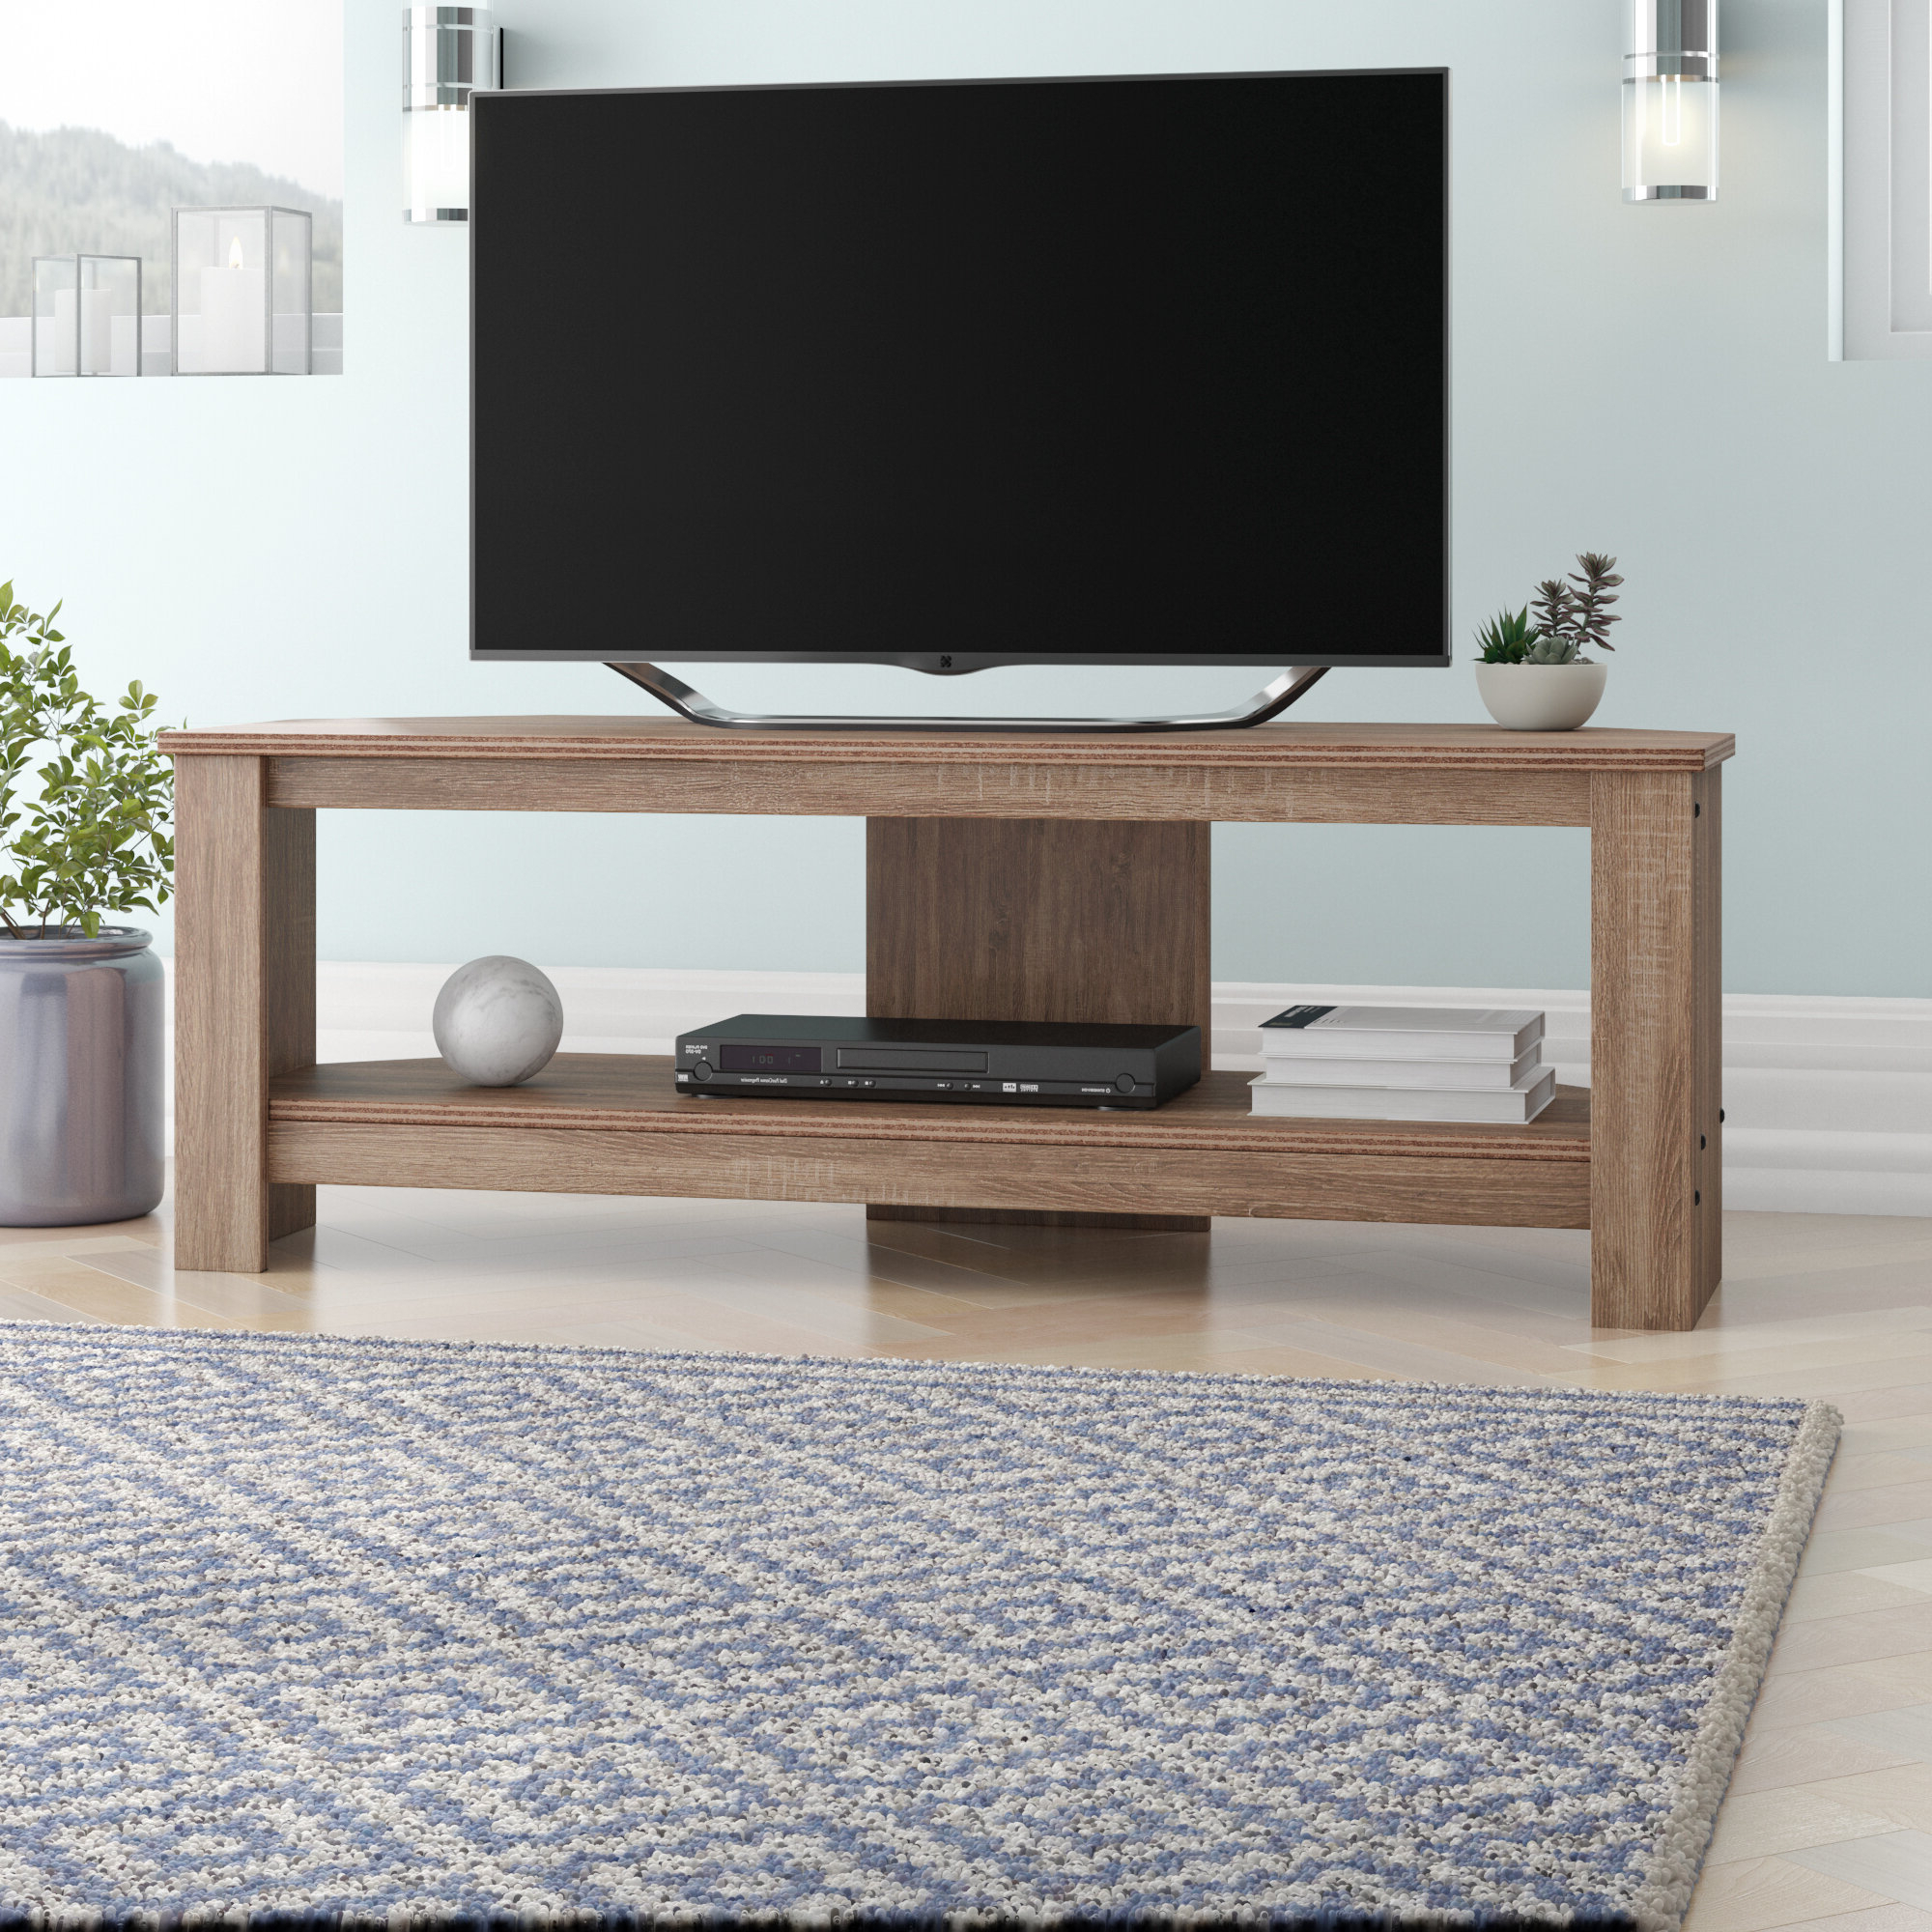 2018 Corner Tv Stands You'll Love (View 9 of 20)